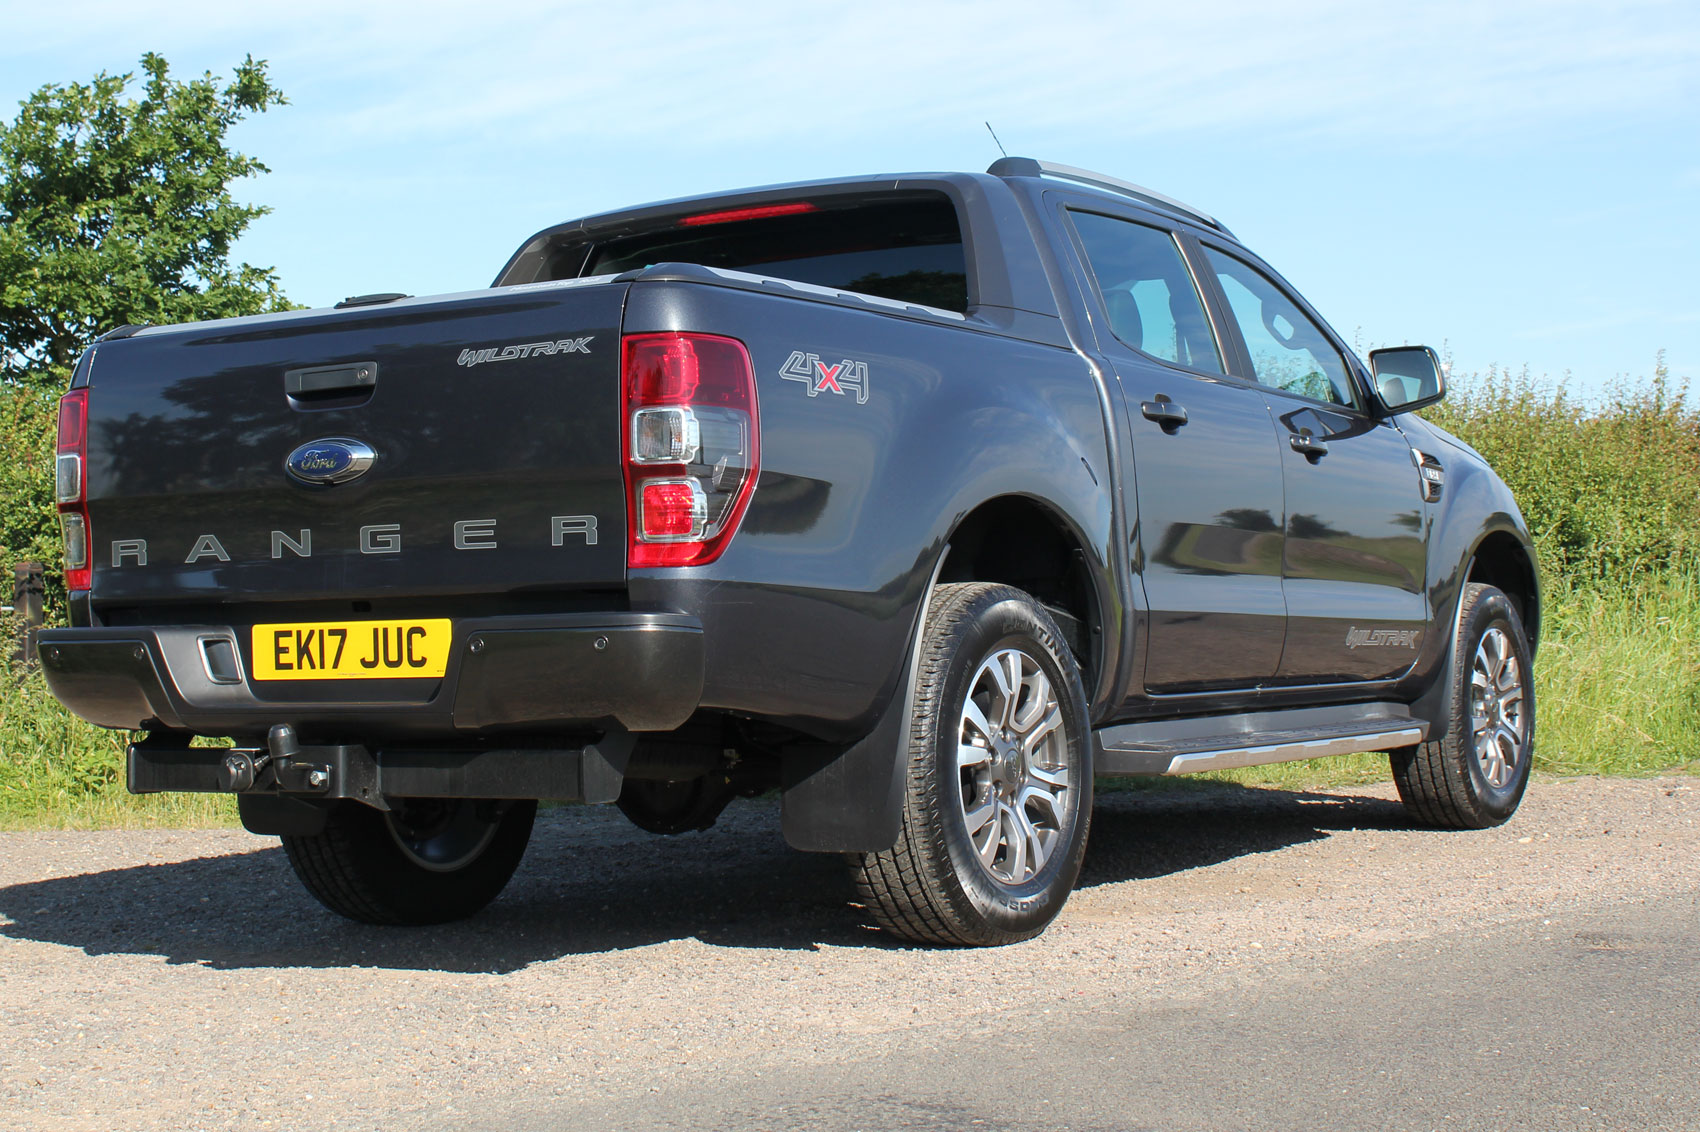 Ford Ranger Wildtrak Euro 6 review | Parkers